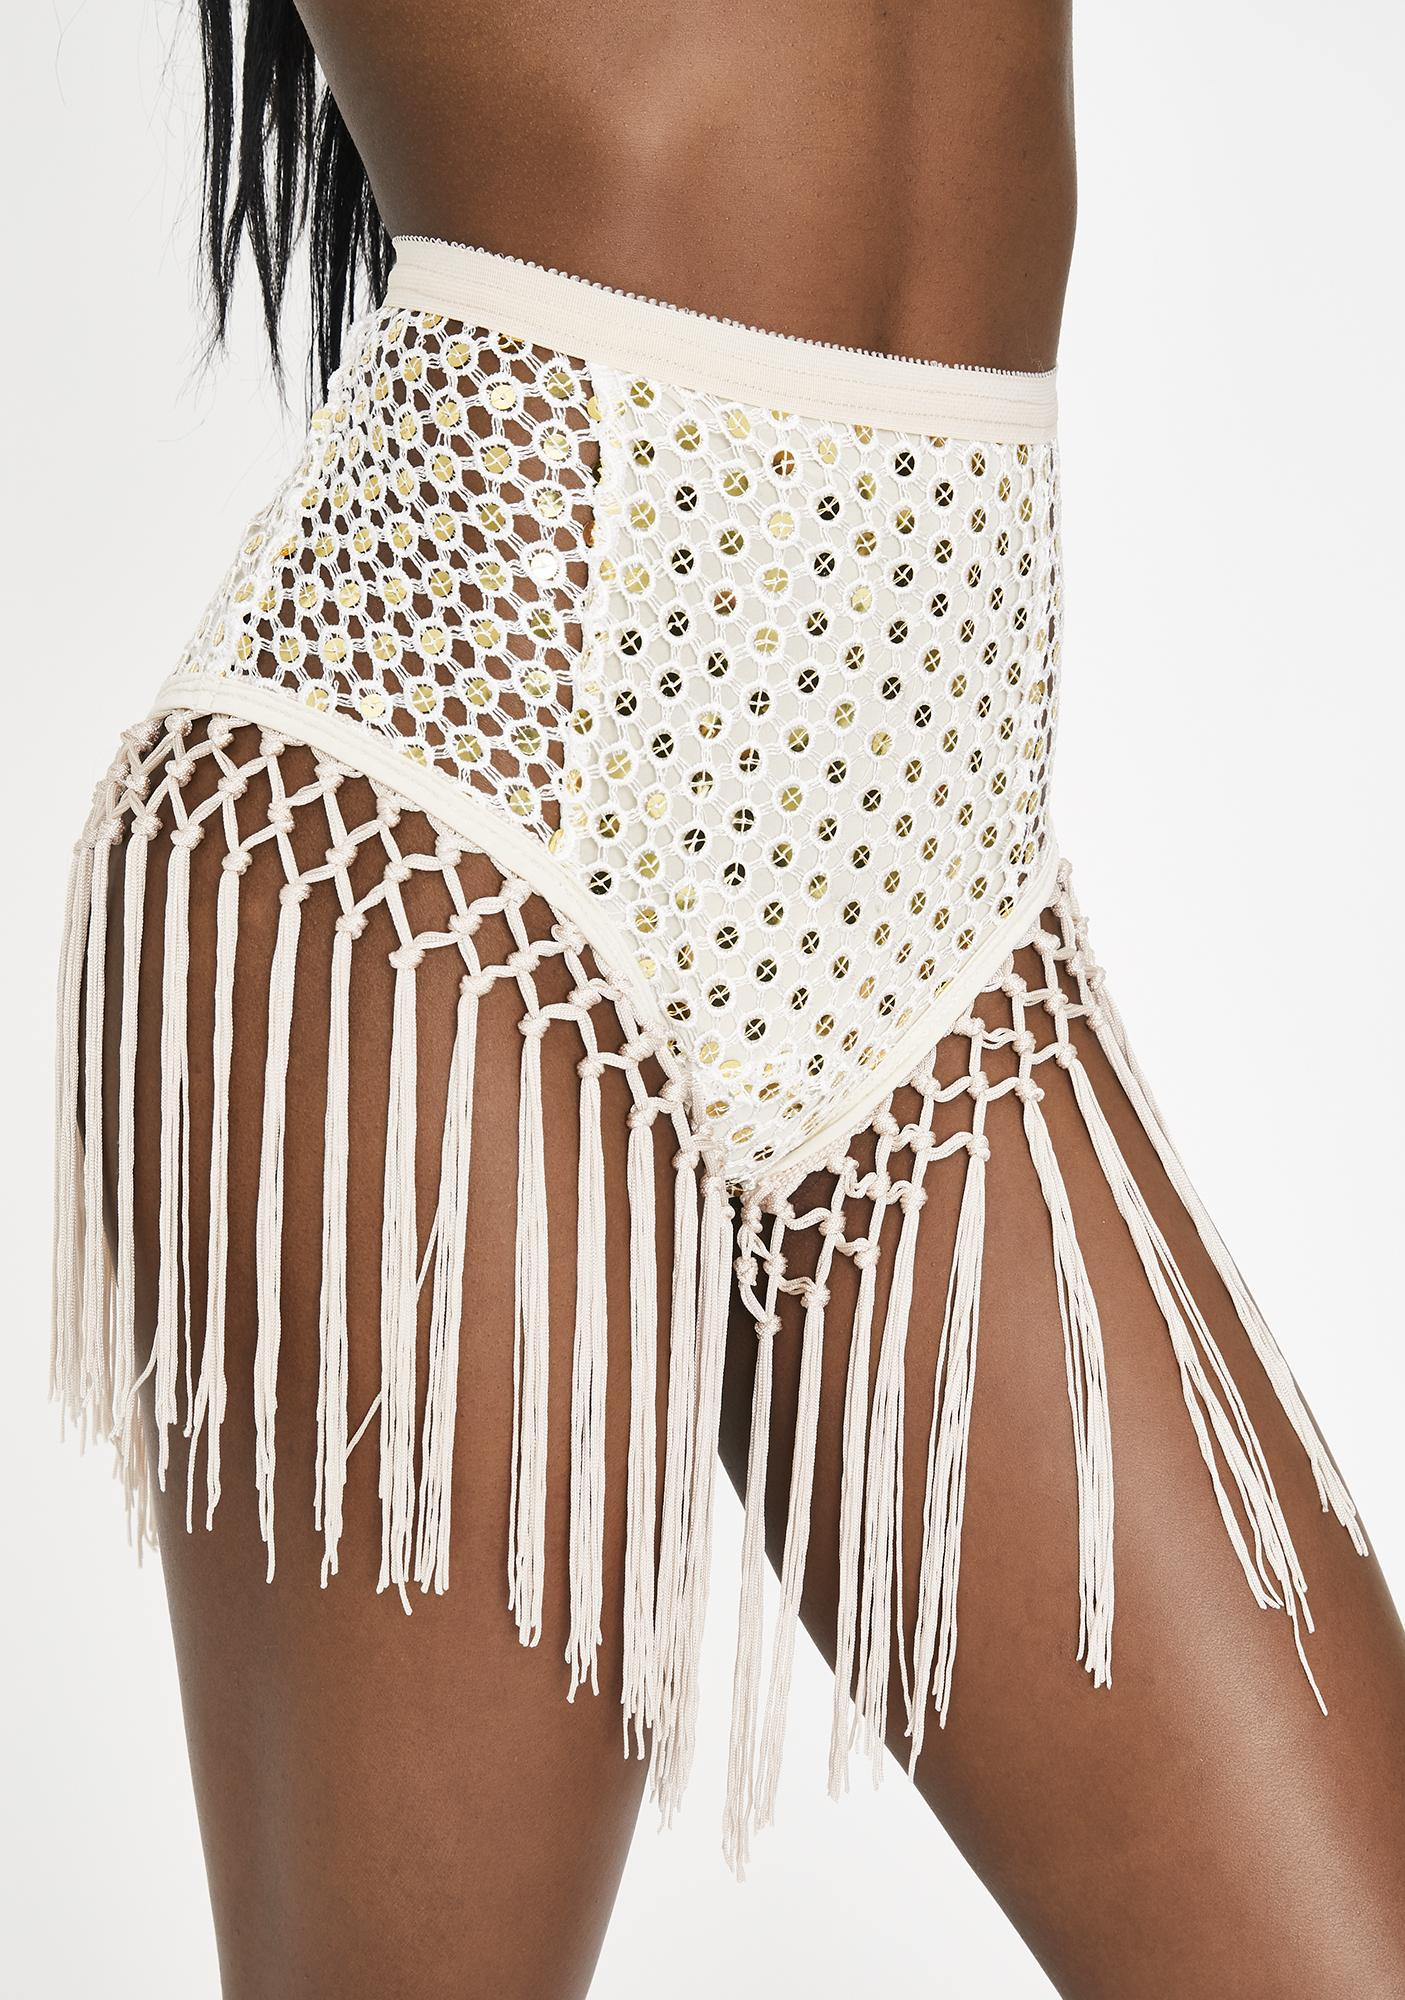 EastnWest White Mirror Verona Fringe Undies